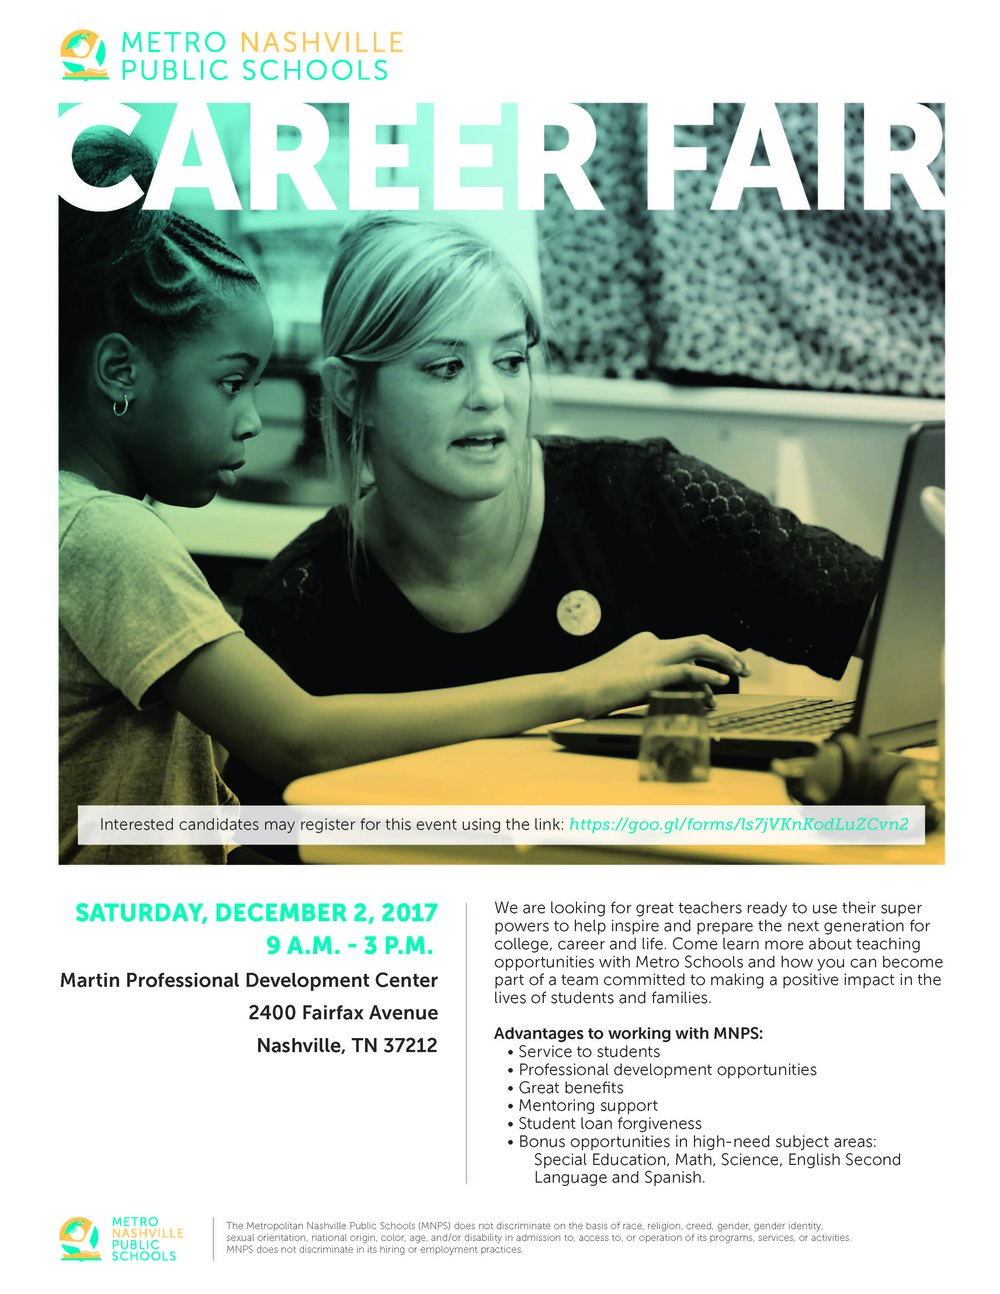 Certificated Recruitment Fair Flier - 11.16.17.jpg